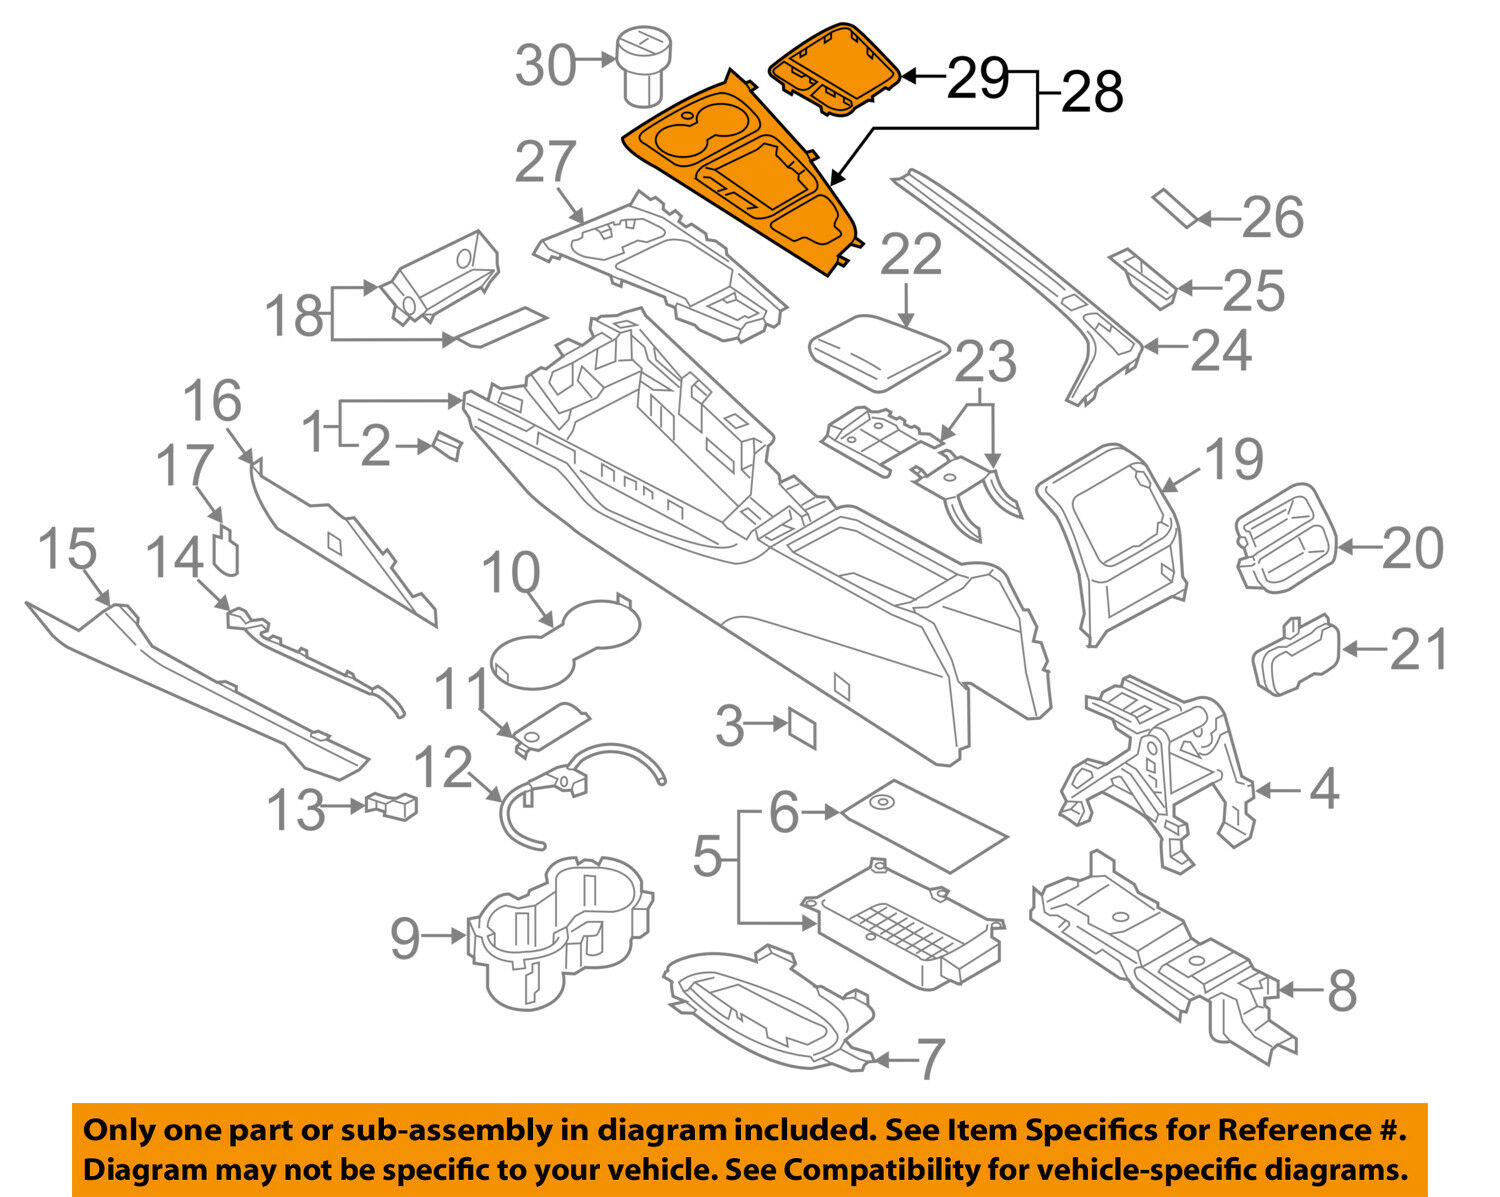 Audi A4 Console Diagram Great Design Of Wiring 1998 1 8t Engine Oem 17 18 Finish Panel Trim 8w1864241a6ps For Sale Rh Restomods Com 97 Fuse Box Location Radio Schematic